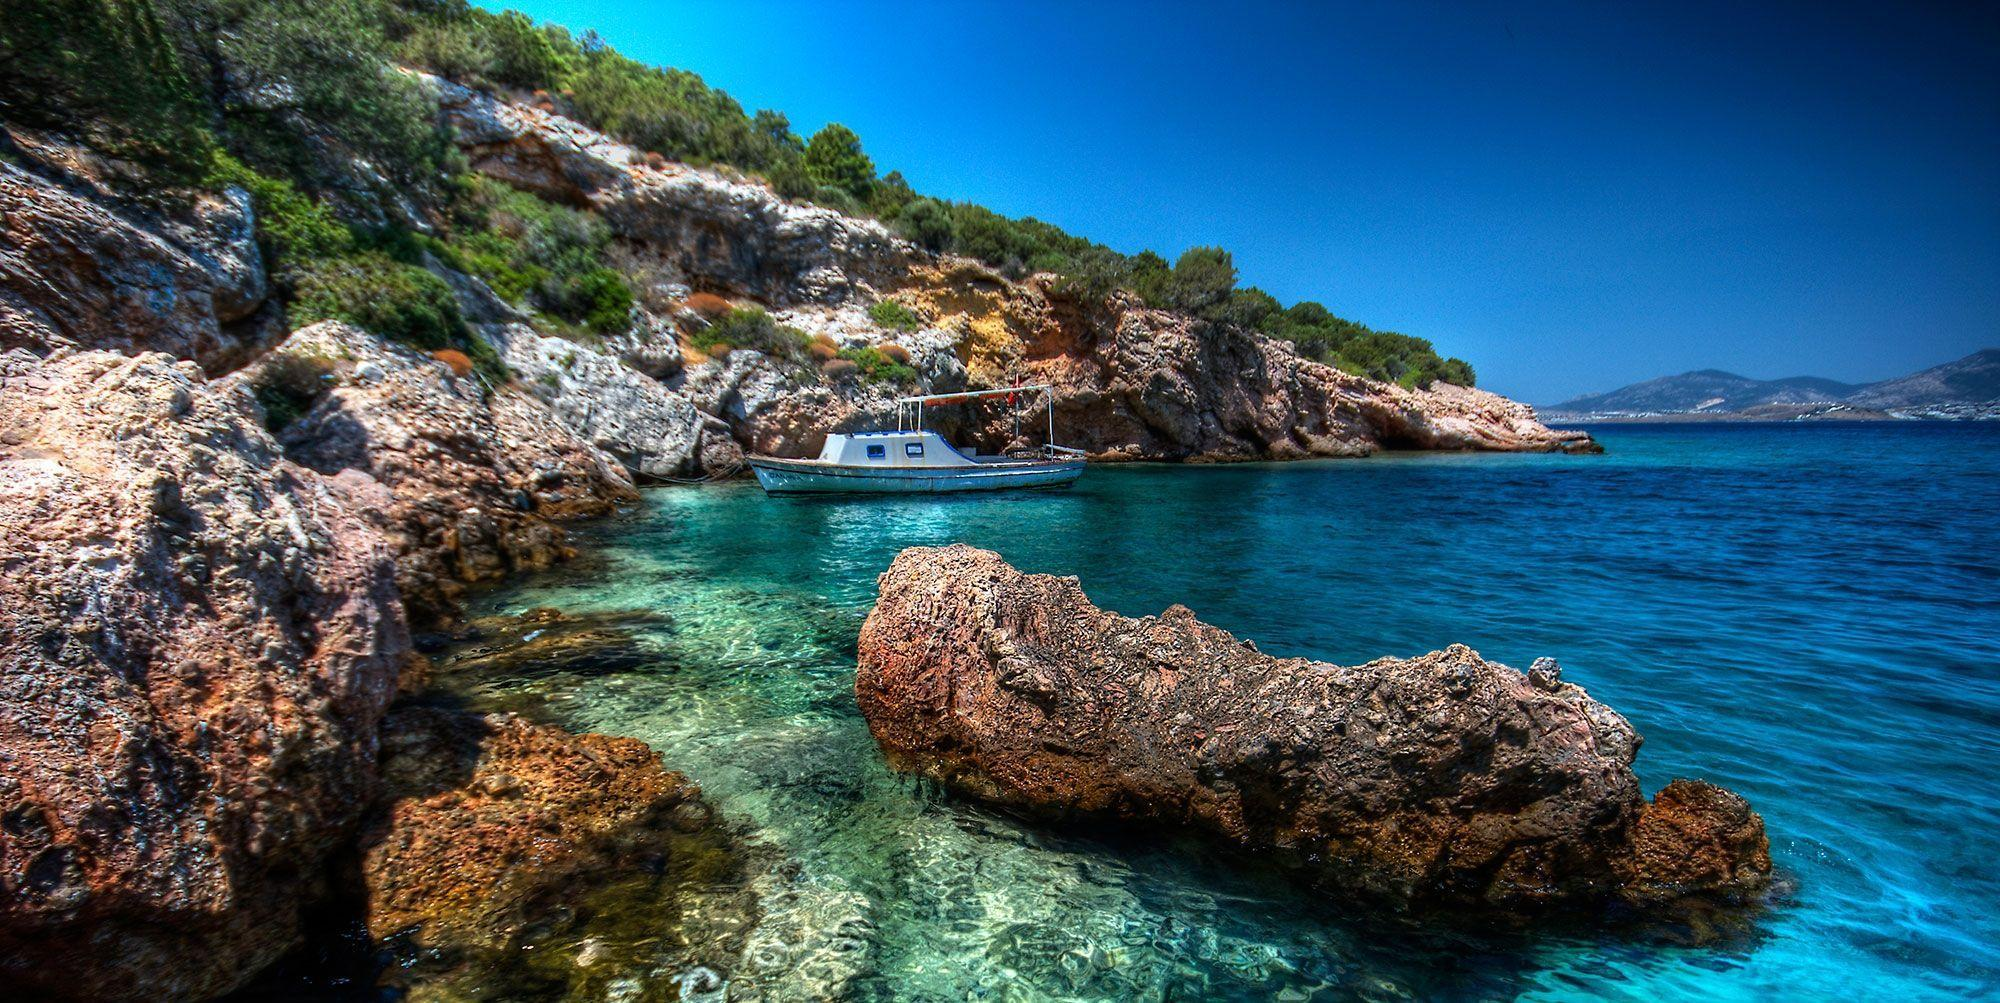 The Cheapest Summer Holiday Destinations If You Want To